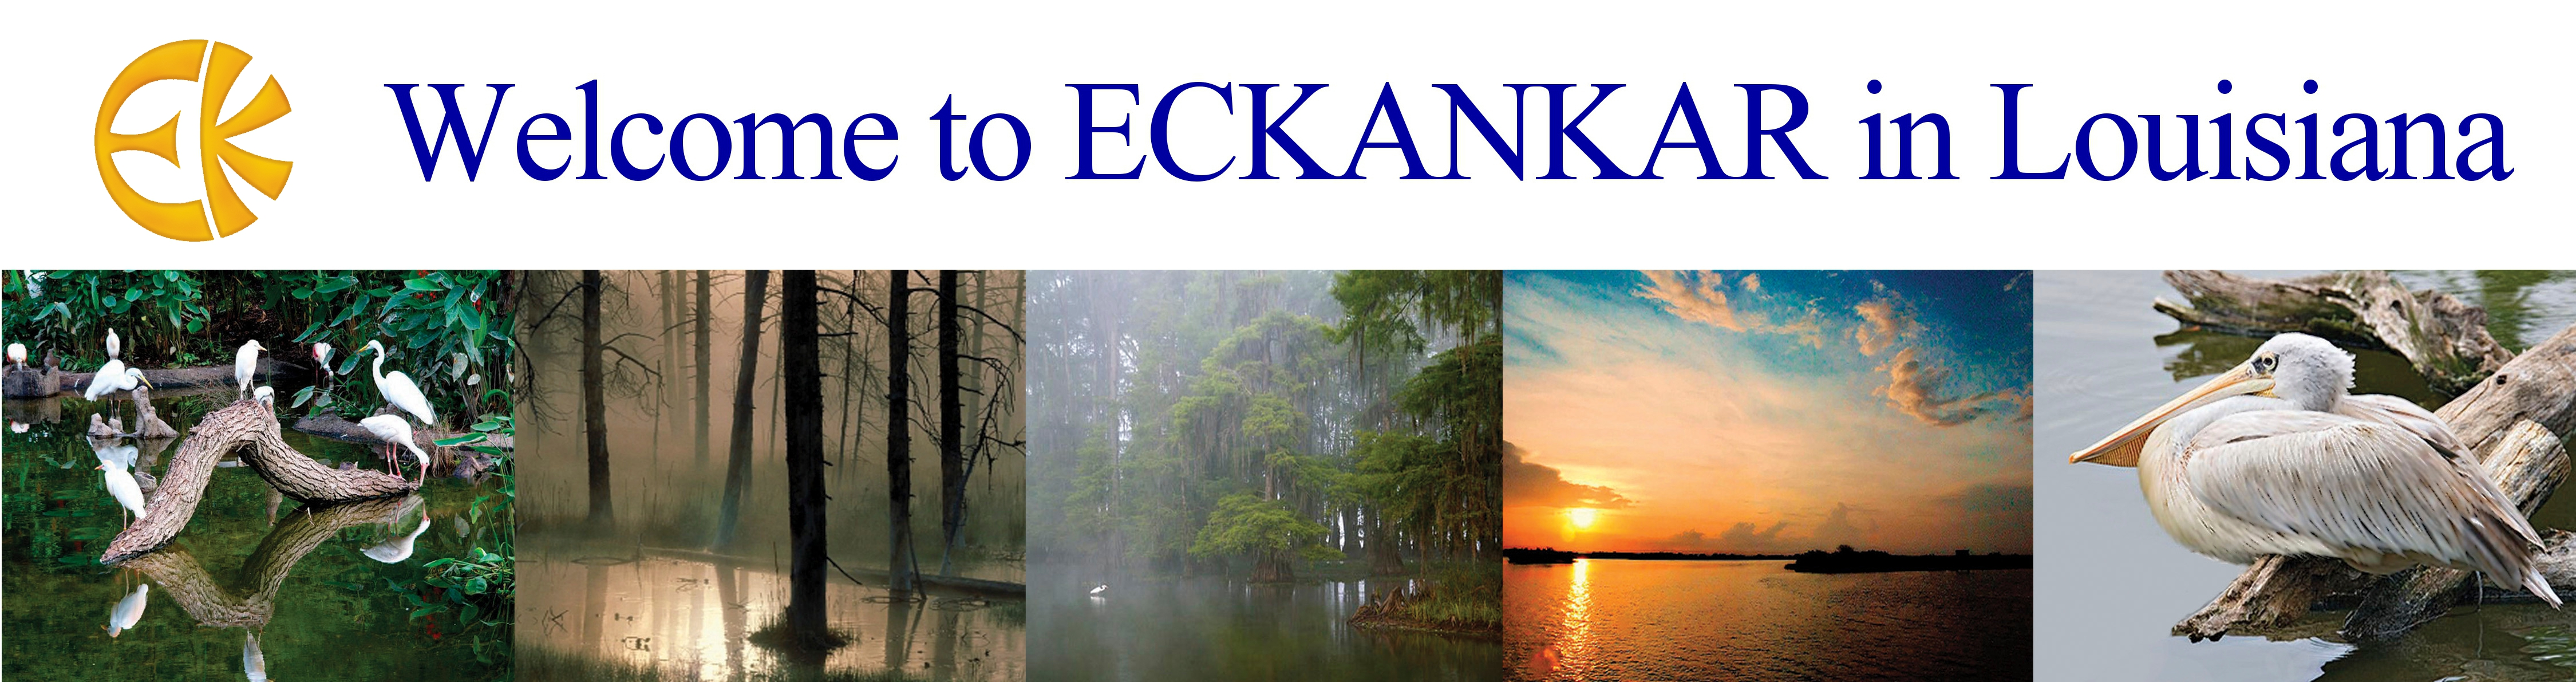 Eckankar in Louisiana